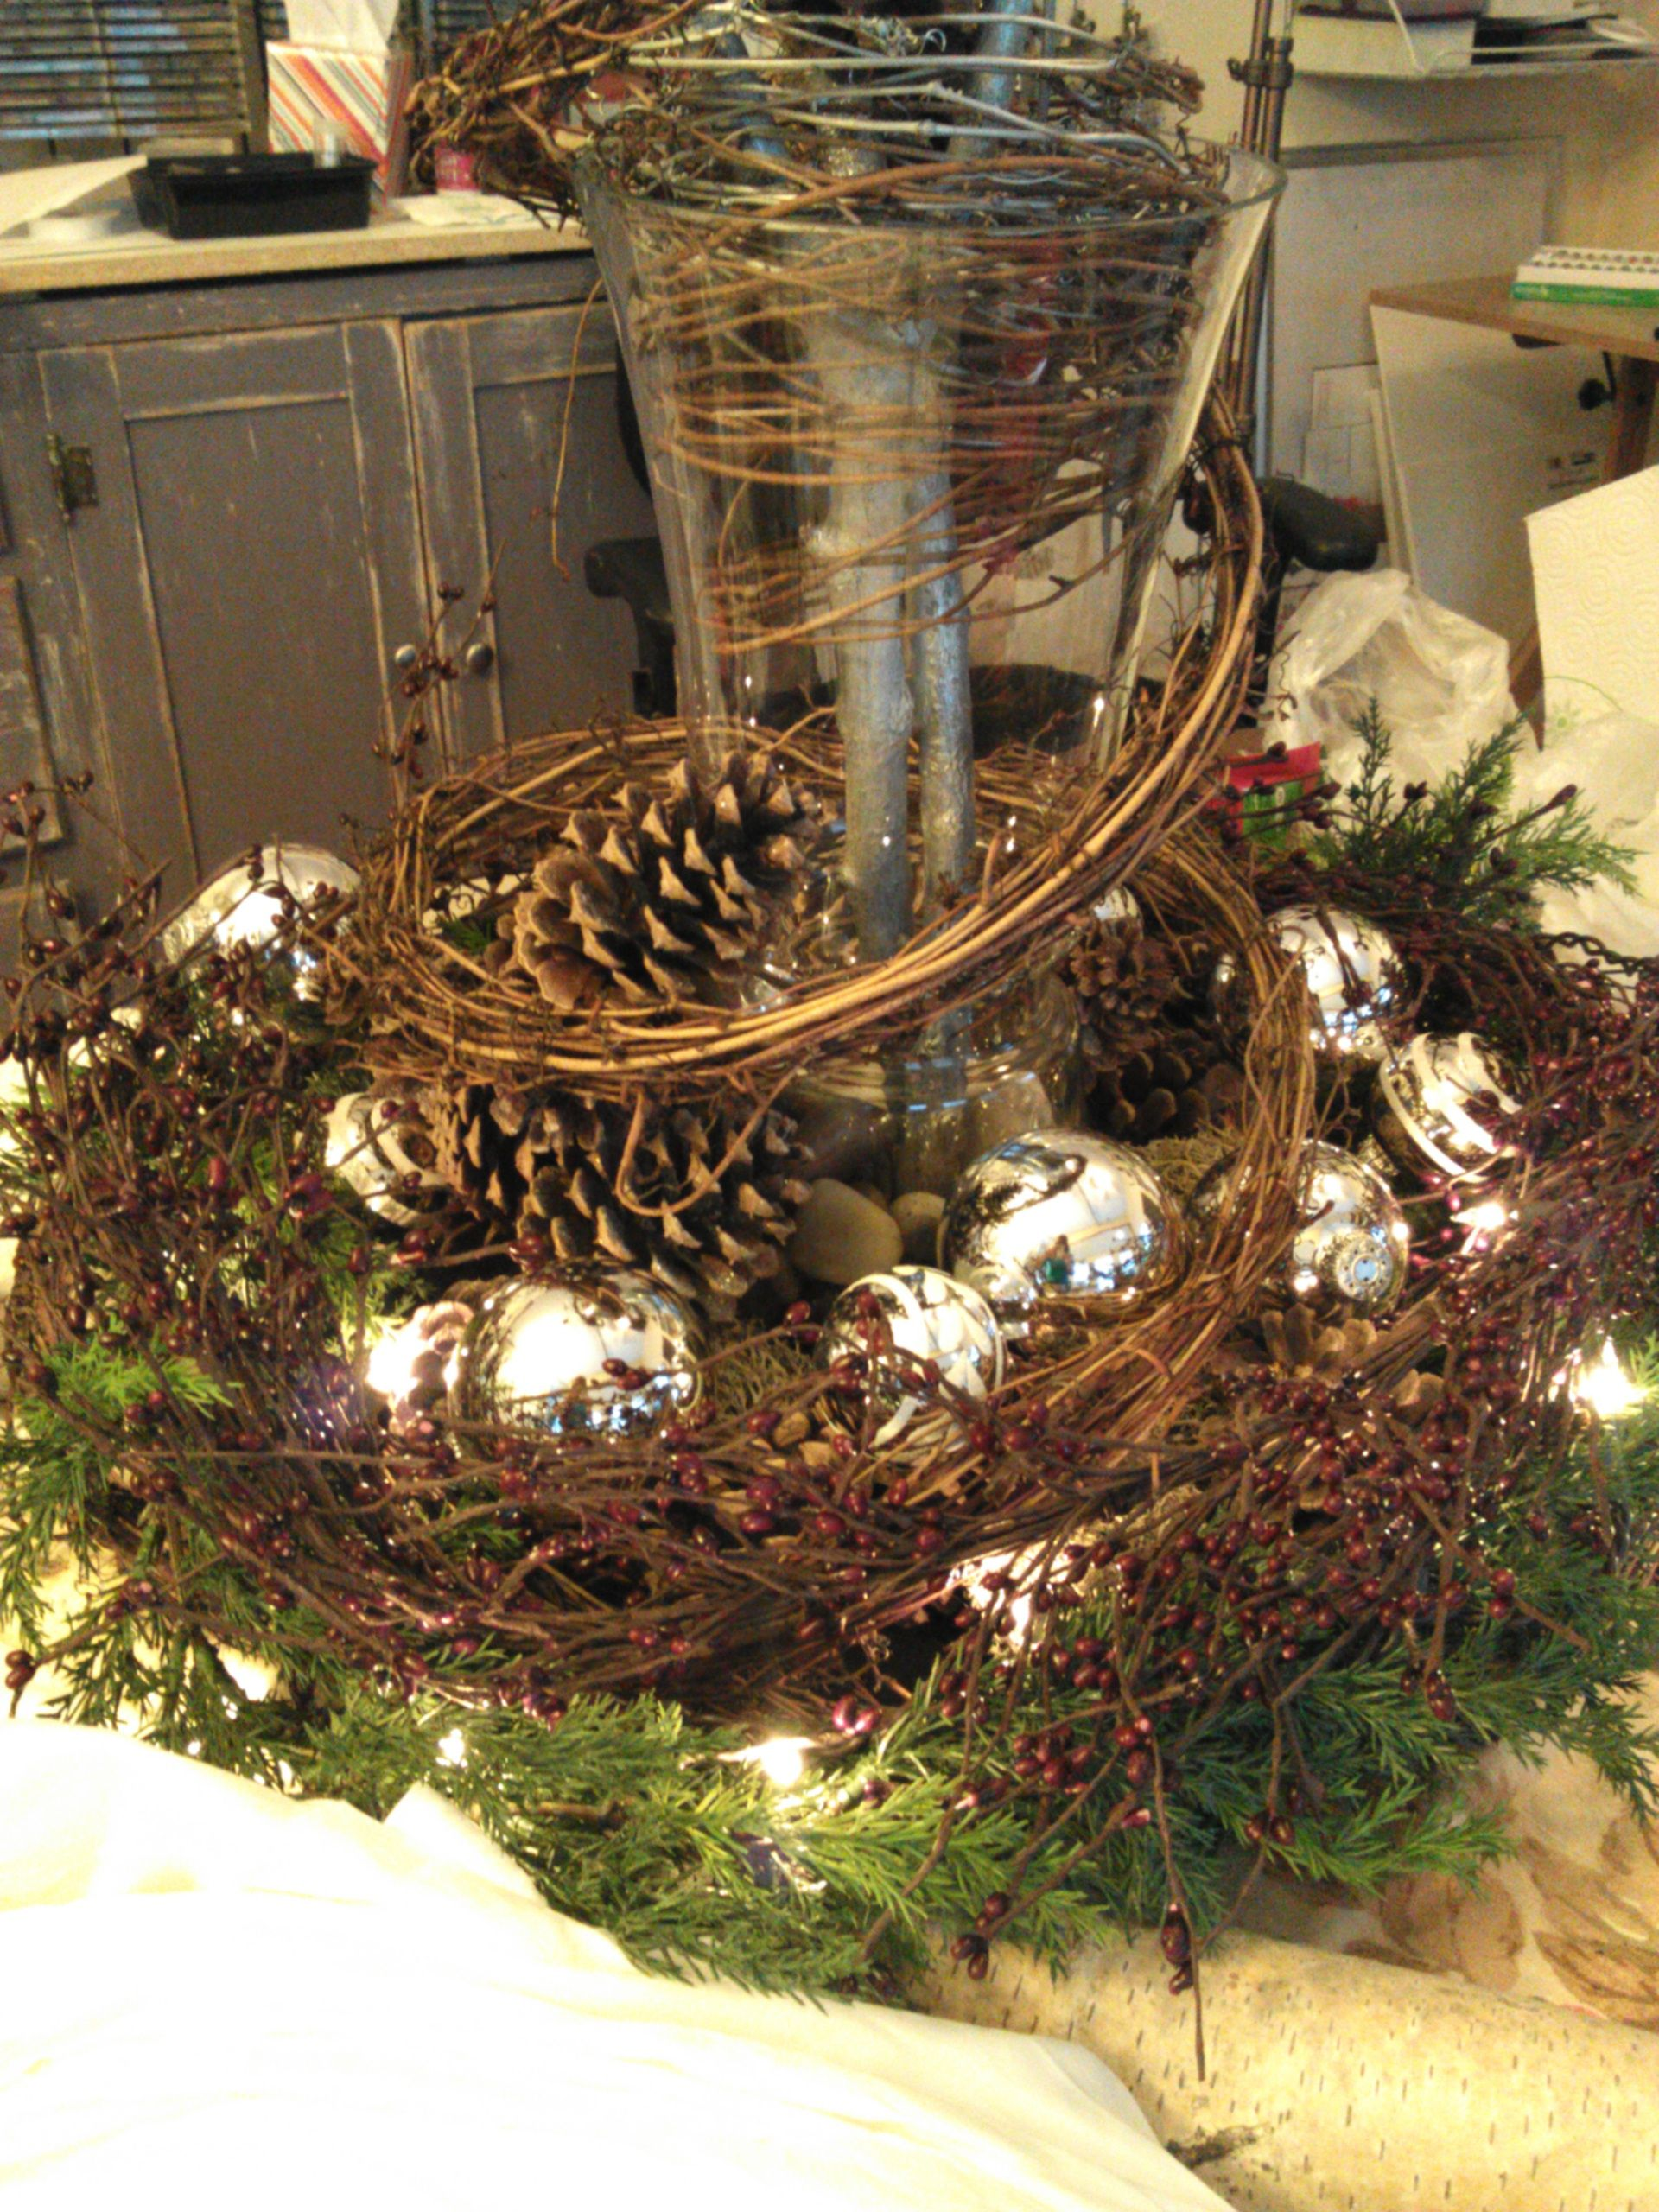 Experimenting with table centerpiece.  Silver glass balls, grapevine, artificial evergreen garland, pinecones.